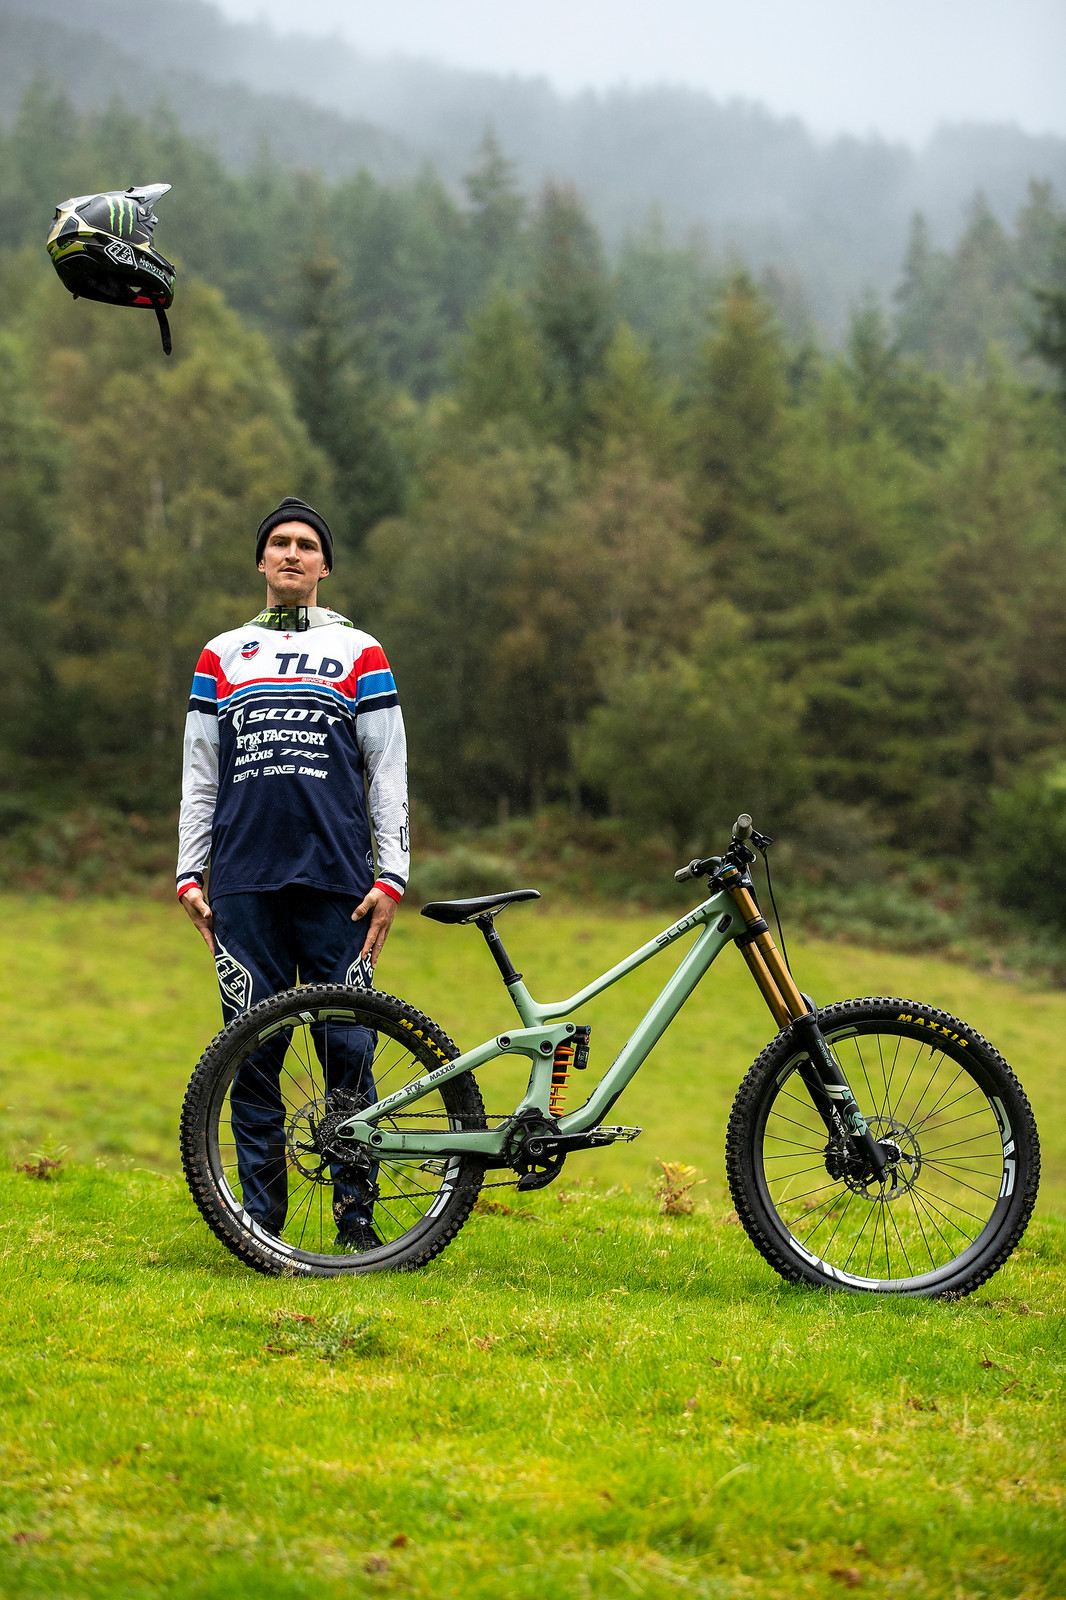 Brendan Fairclough with his Scott Gambler - The Bikes of Red Bull Hardline - Mountain Biking Pictures - Vital MTB